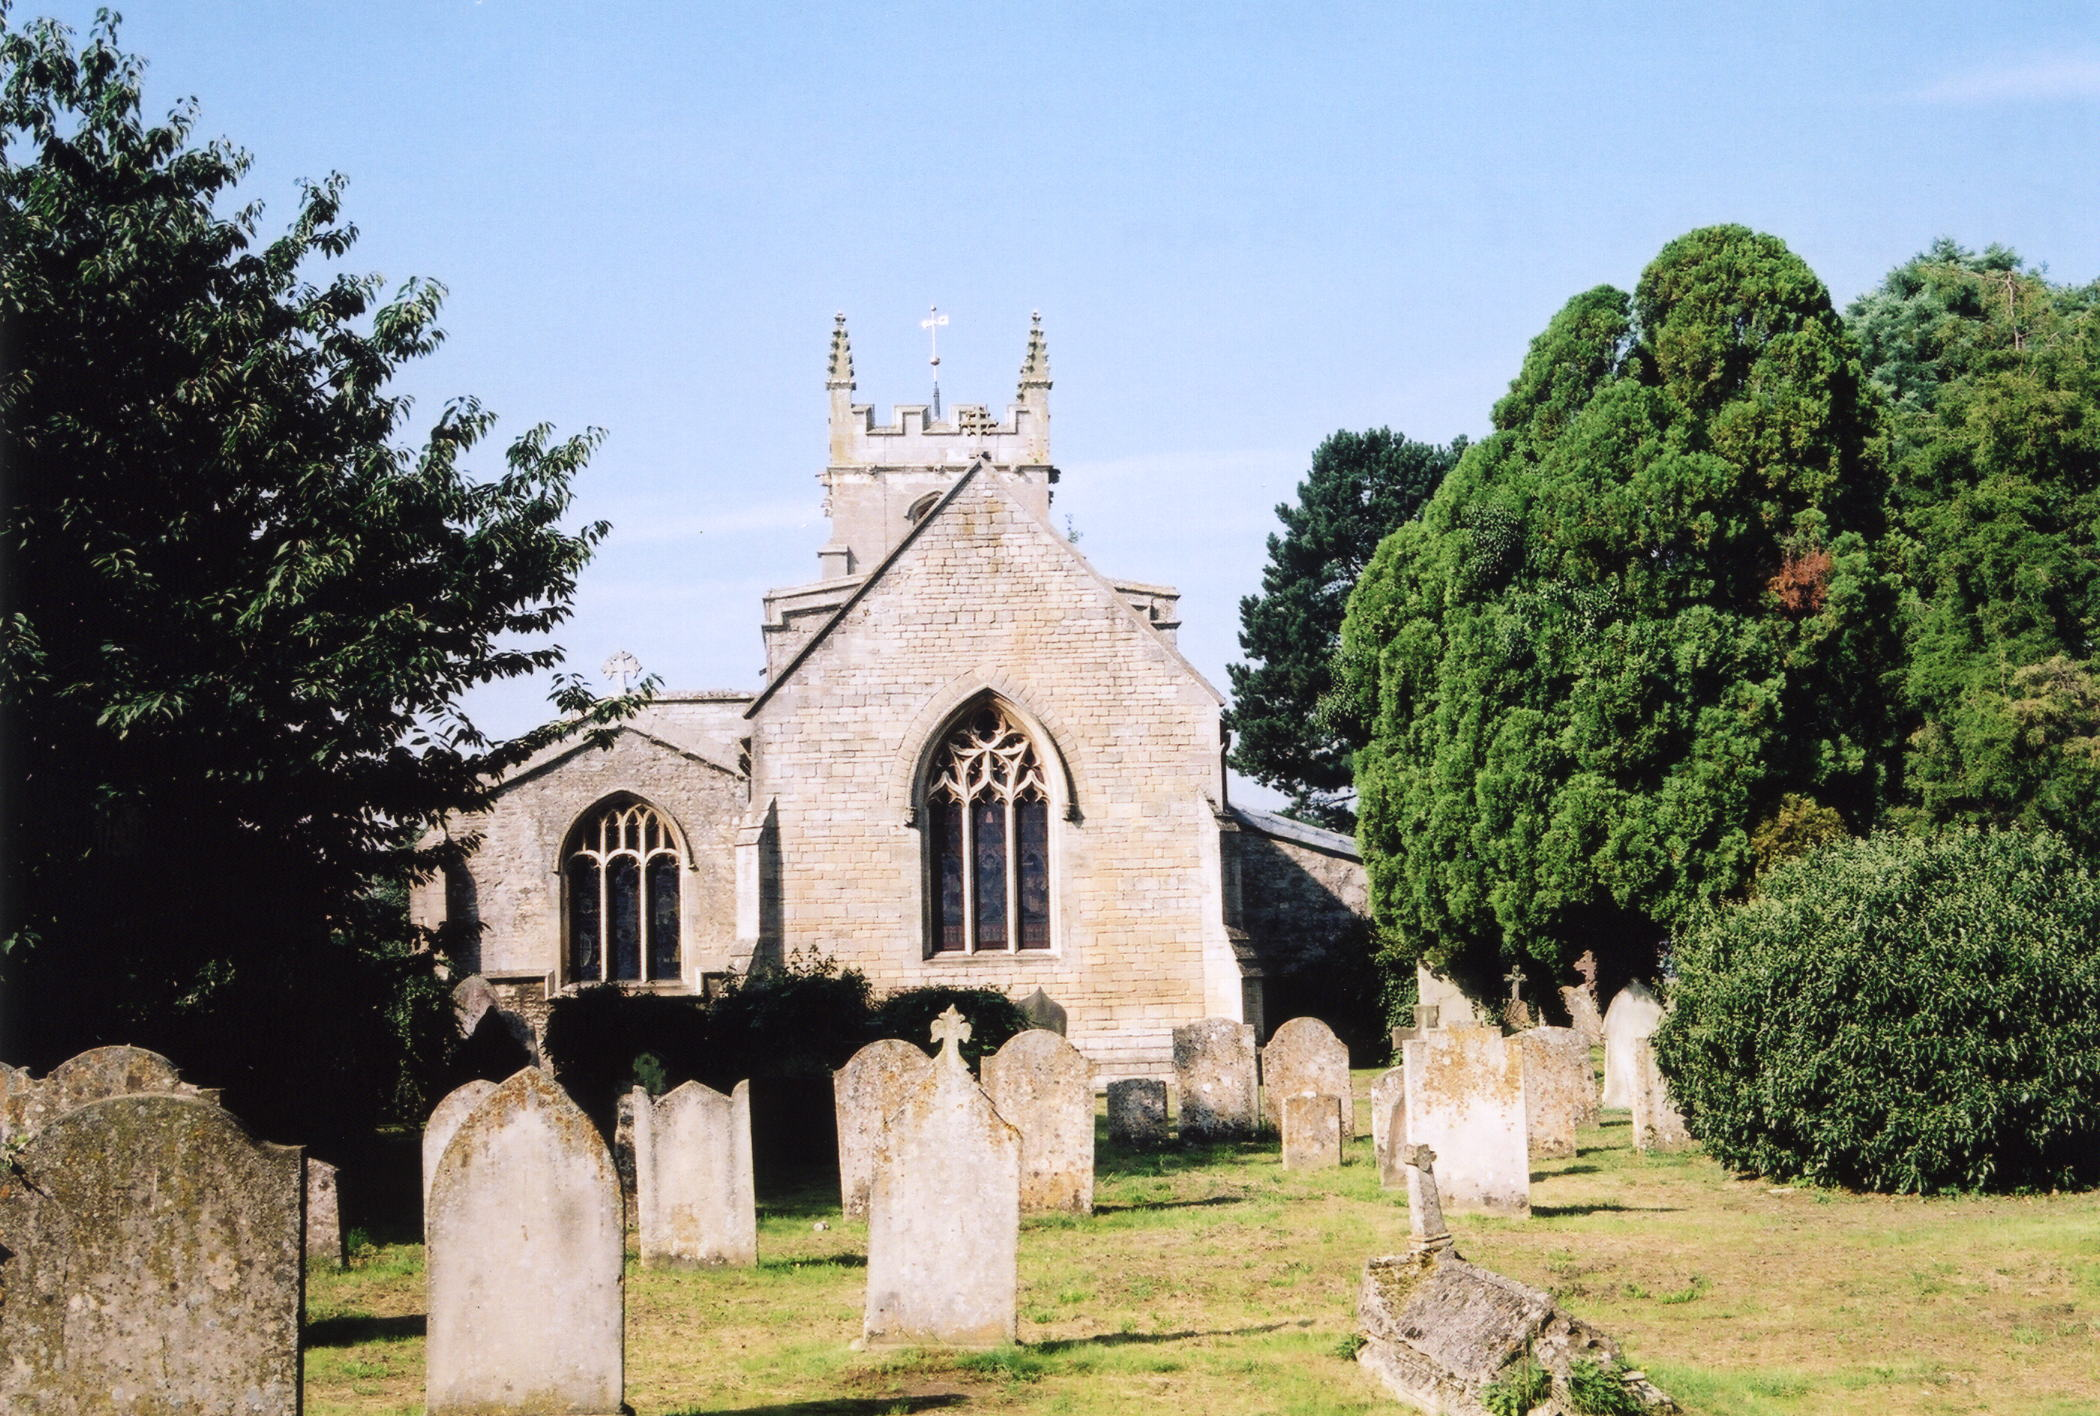 Baston St. John church